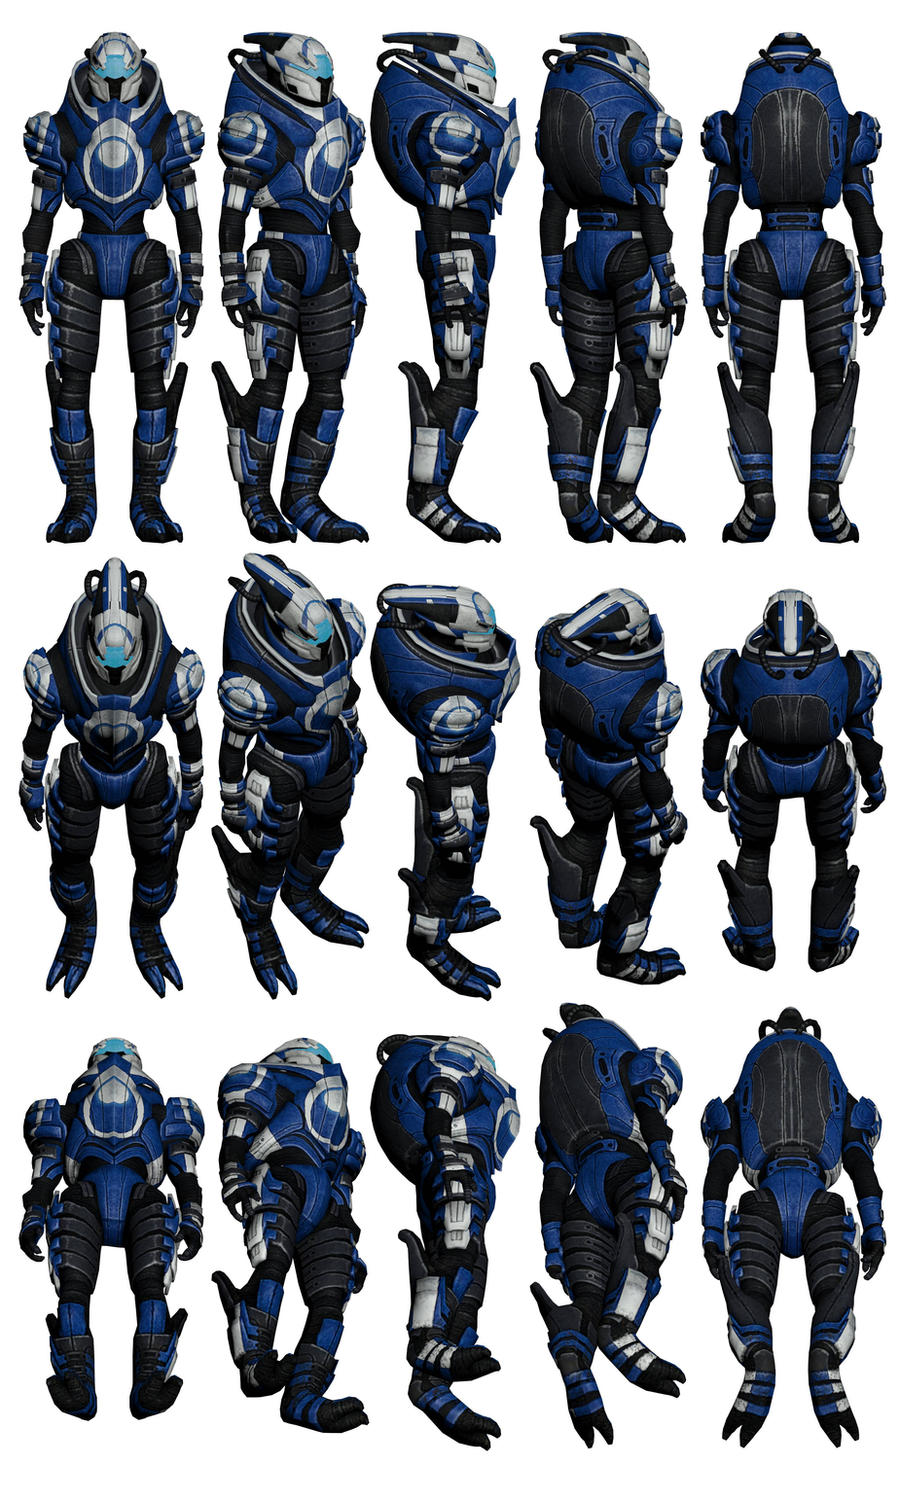 Mass Effect 2, Turian Blue Suns Mercenary Ref by Troodon80